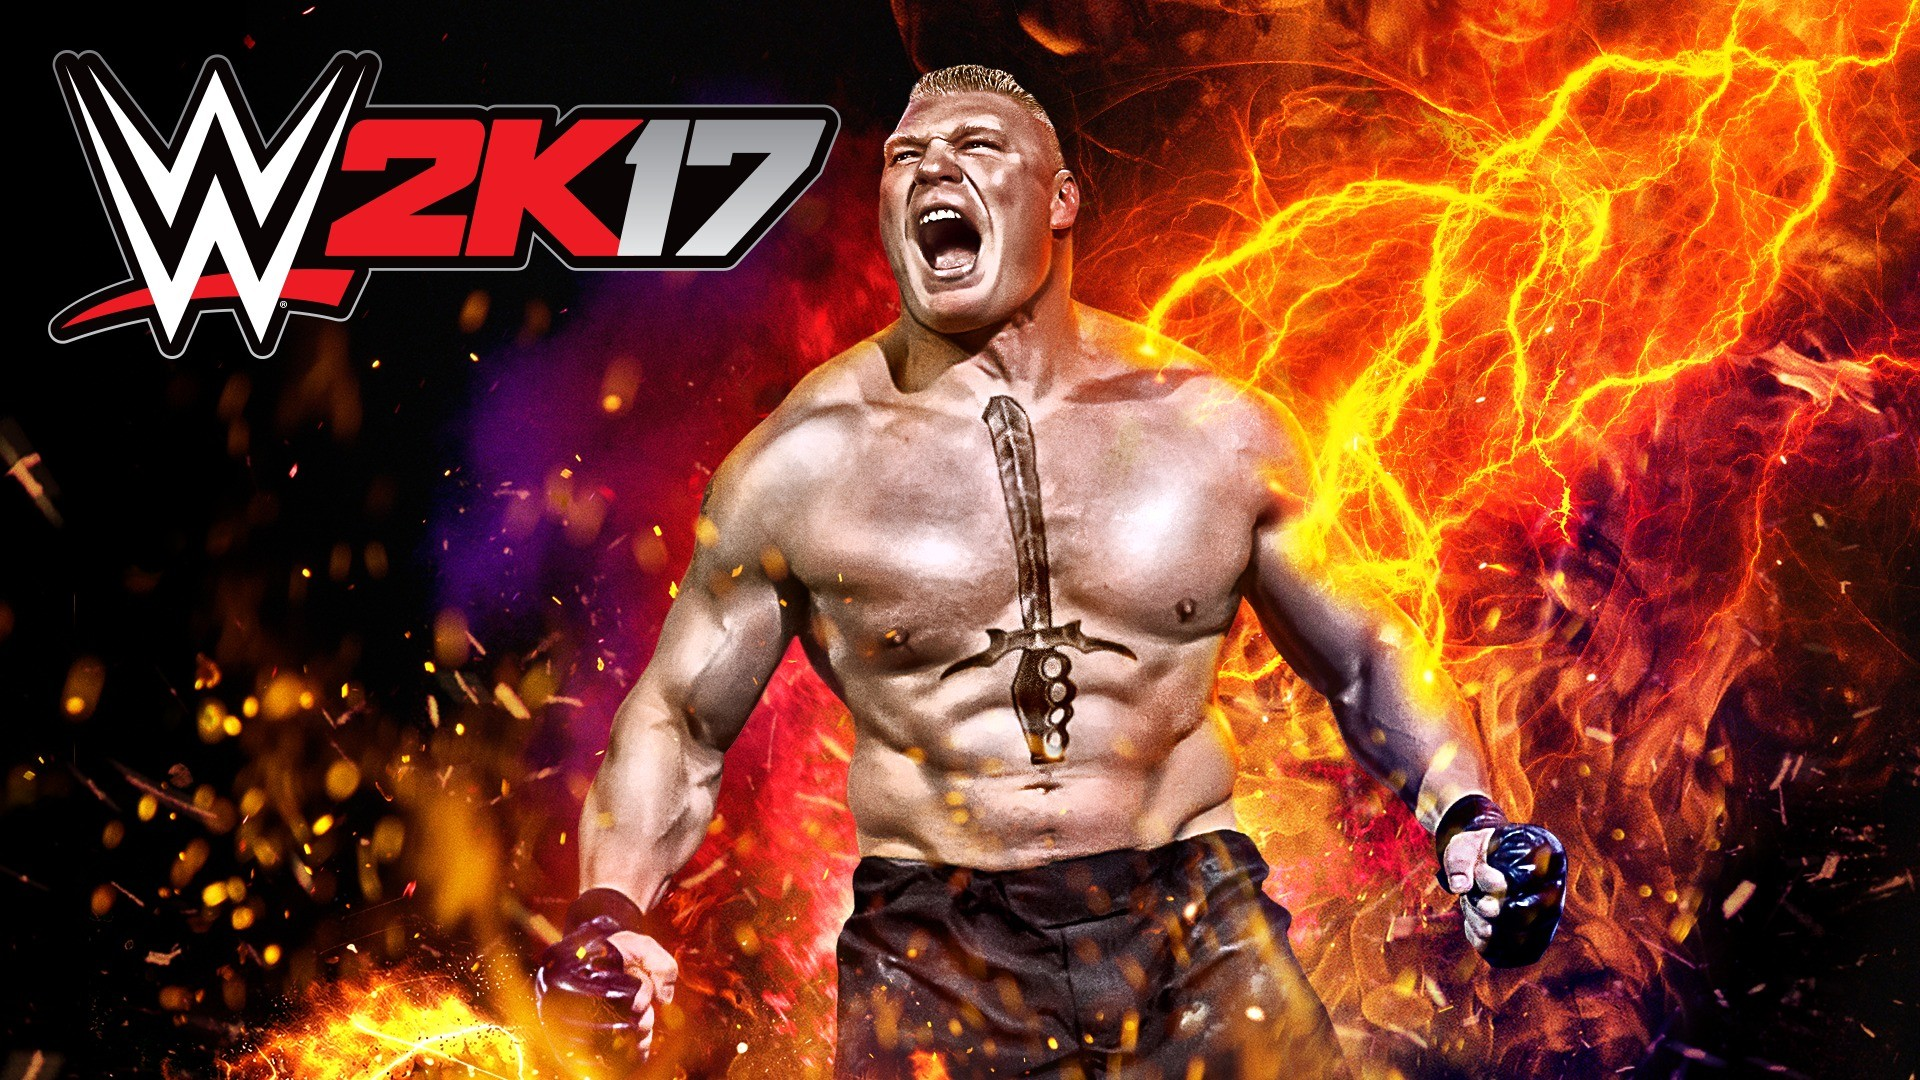 Res: 1920x1080, We present collection of WWE 2K17 HD wallpapers in high quality and  additional high resolution pictures and images for desktop, Android and iOS.